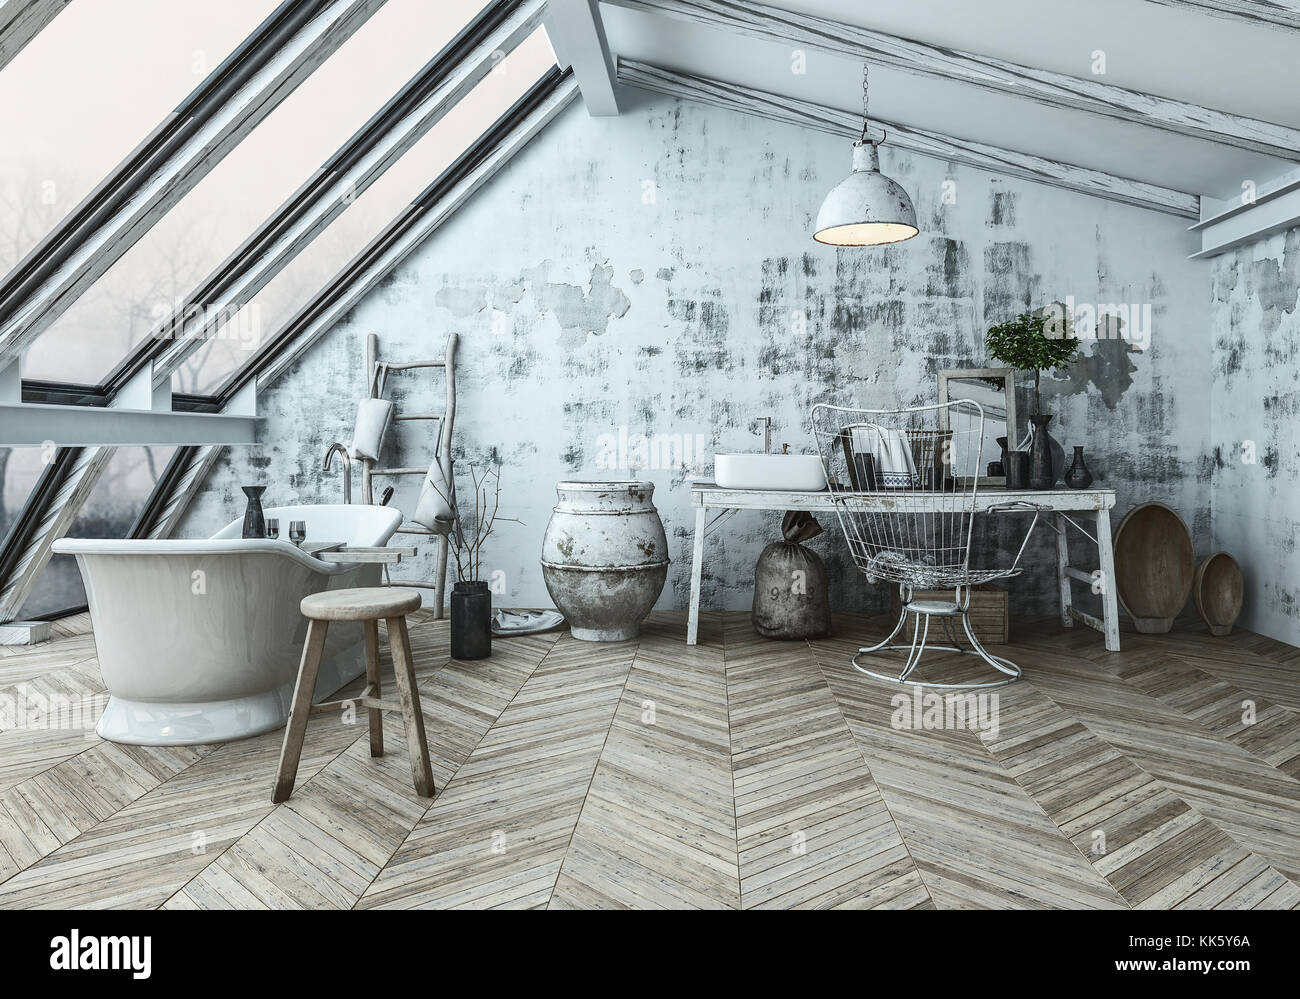 Modern Scandinavian Style Bathroom Interior With An Eclectic Collection Of Collectibles And Herringbone Wood Floor In A Converted Attic 3d Rendering